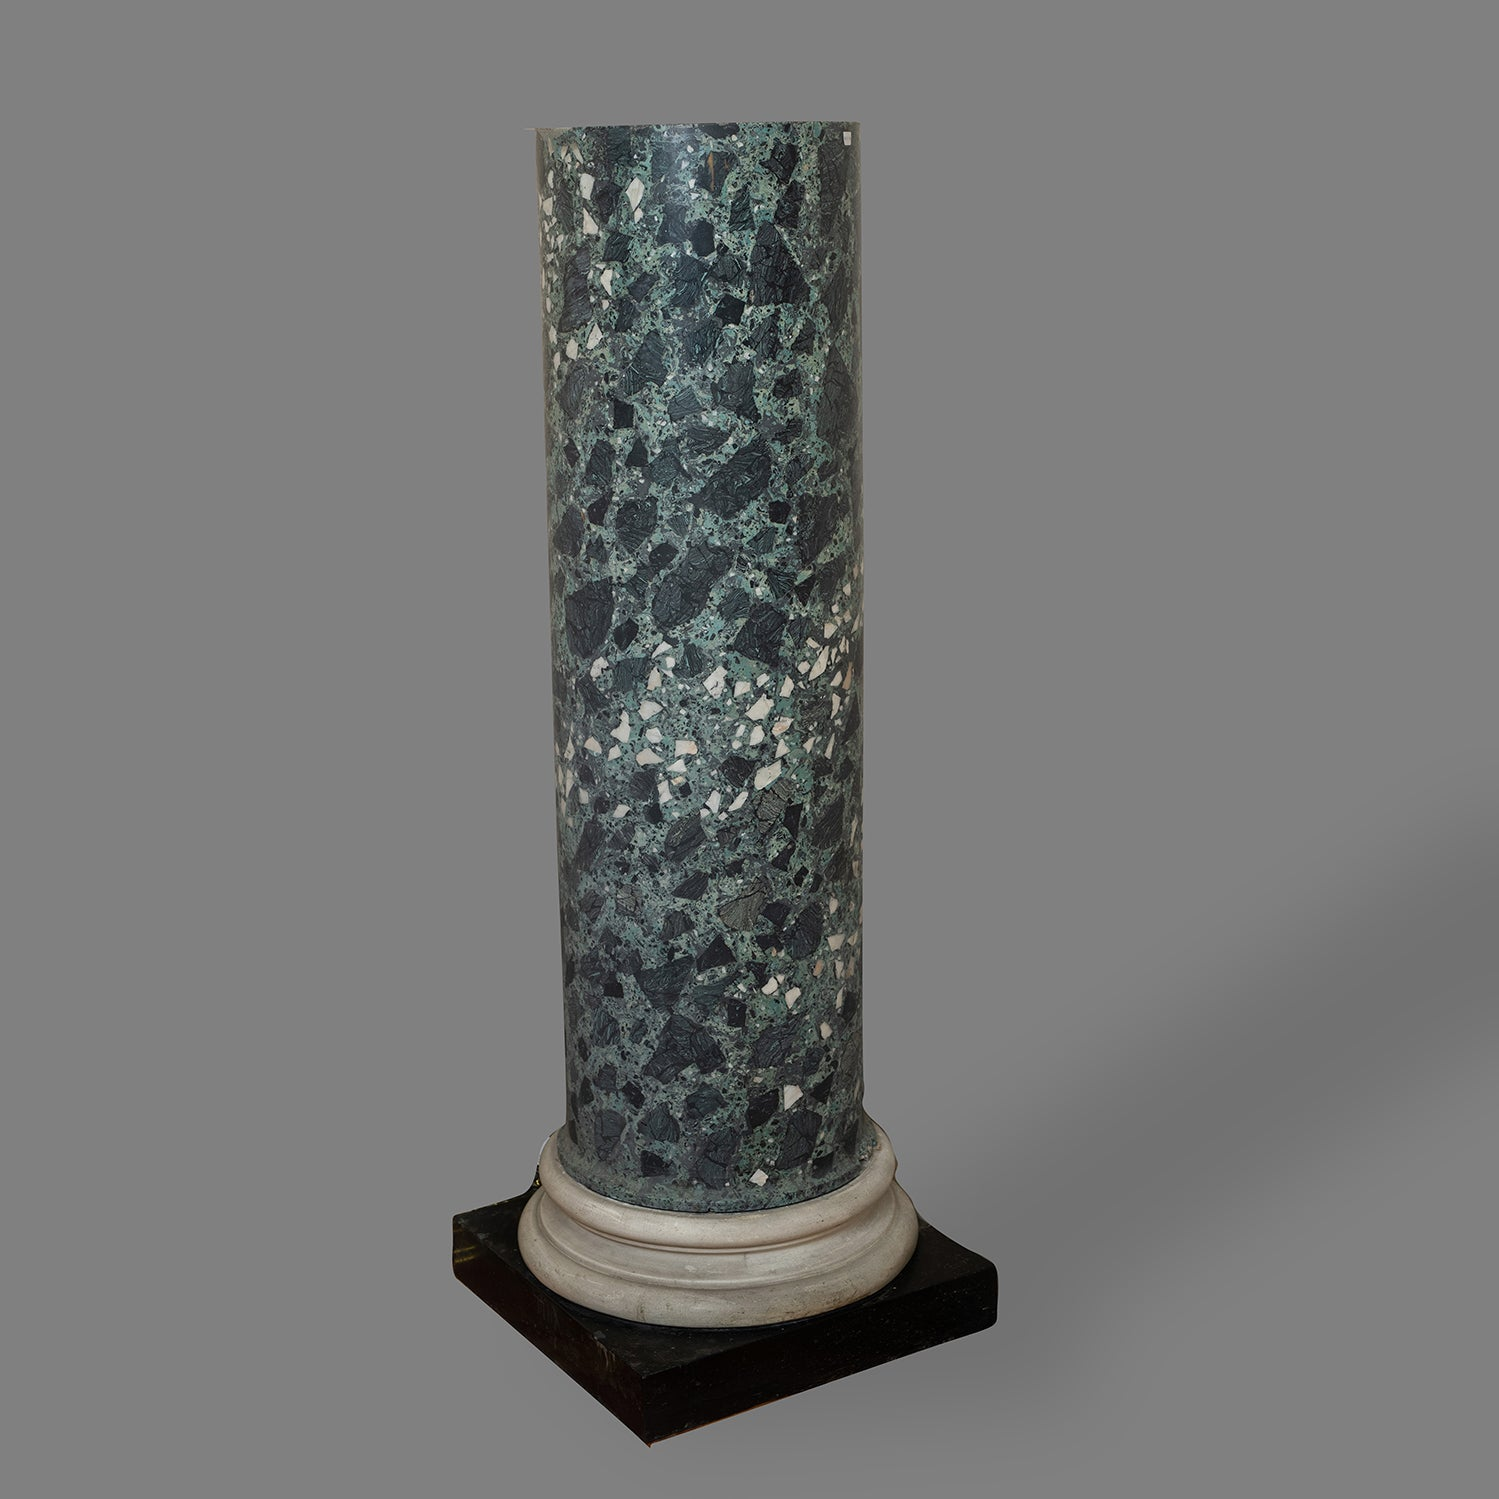 A VERDE-ANTICO SCAGLIOLA AND MARBLE COLUMN ON WHITE TURNED COLLAR SUPPORT AND BLACK MARBLE BASE